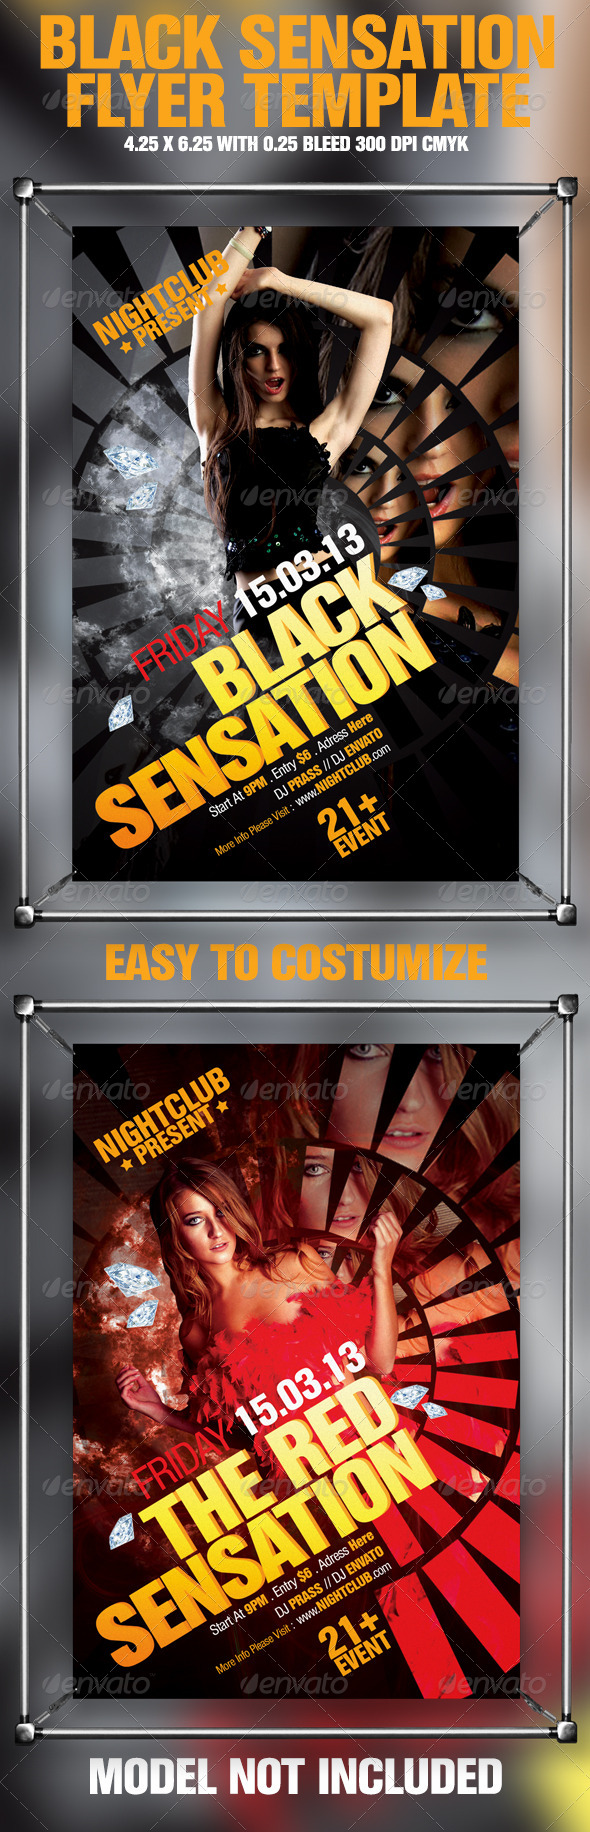 Black Sensation Flyer Template - Clubs & Parties Events